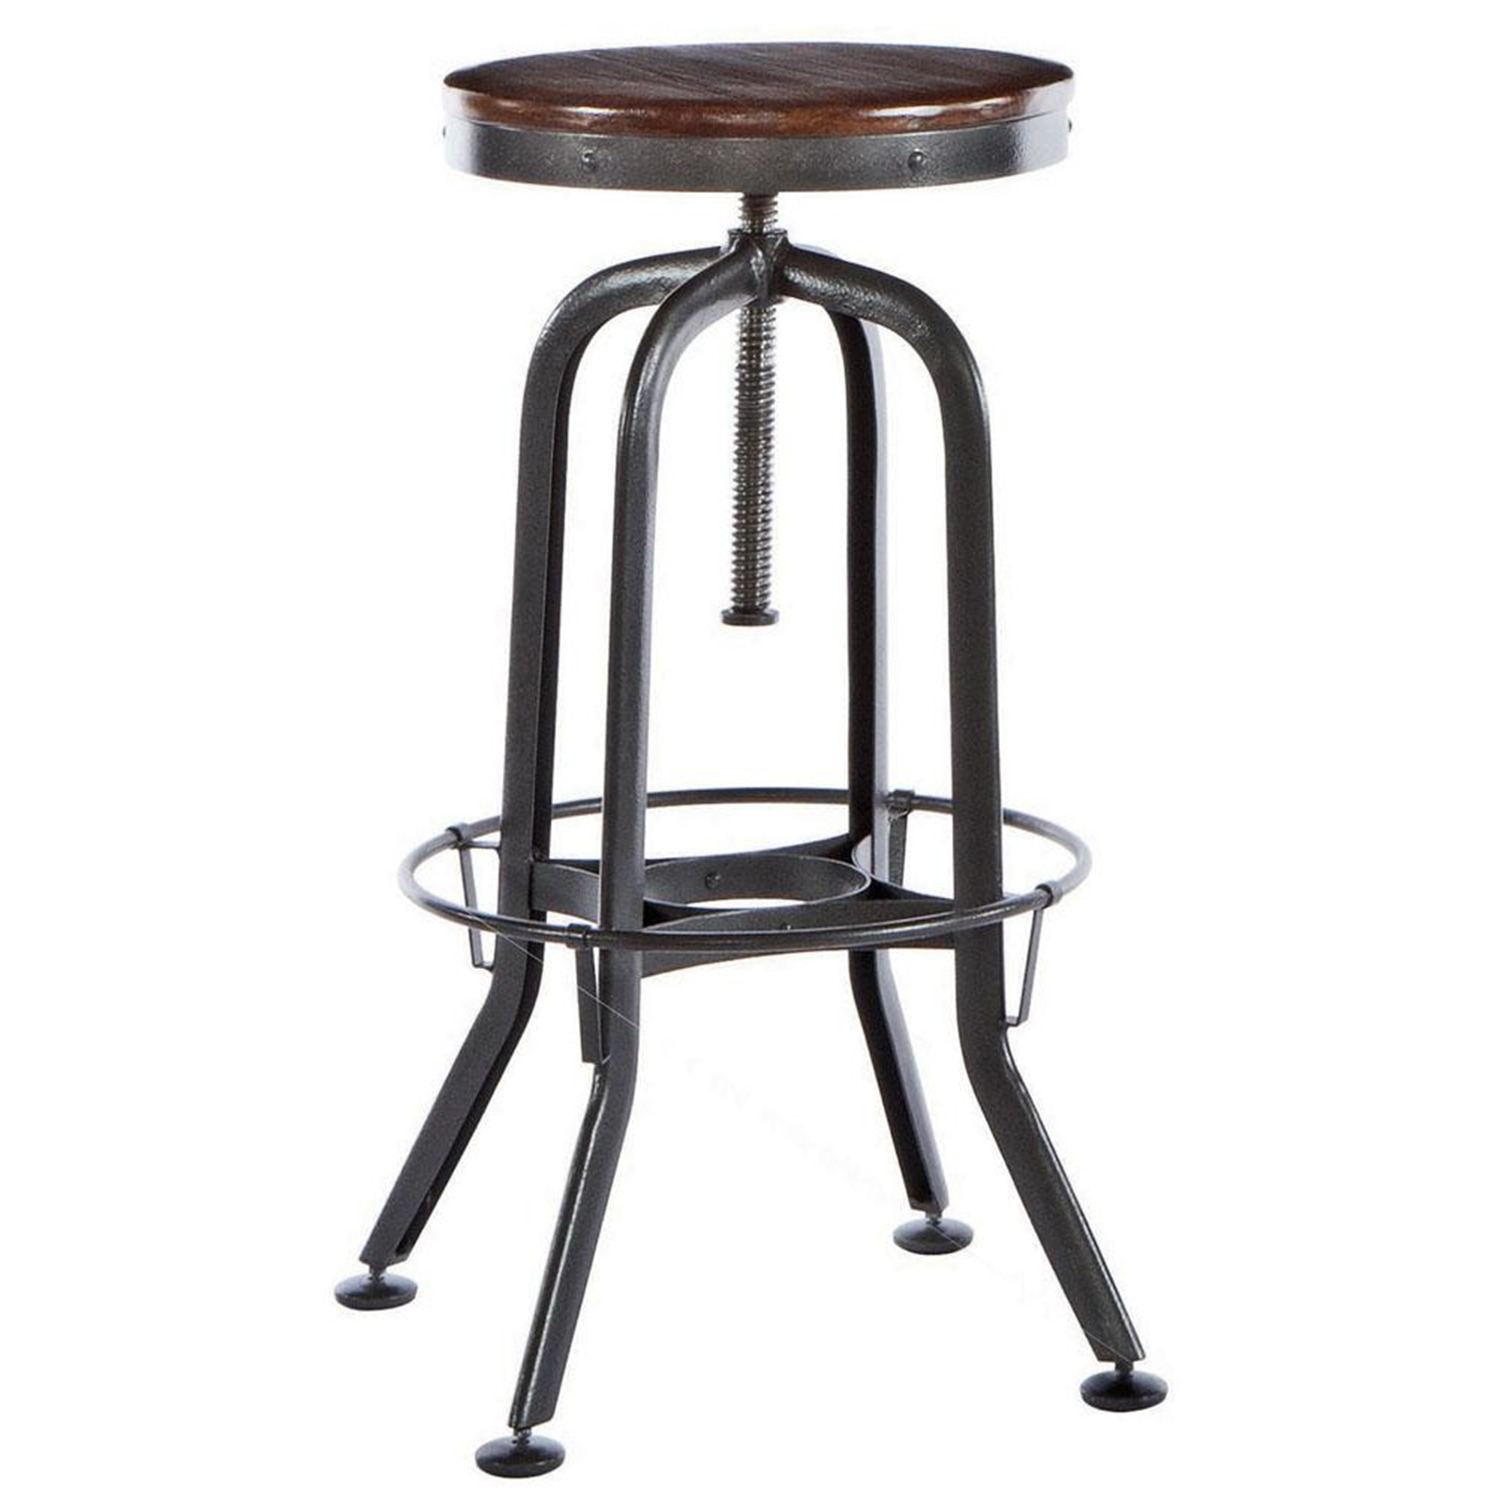 sitcom vintage bar stool by oj commerce vint00008892 211 99